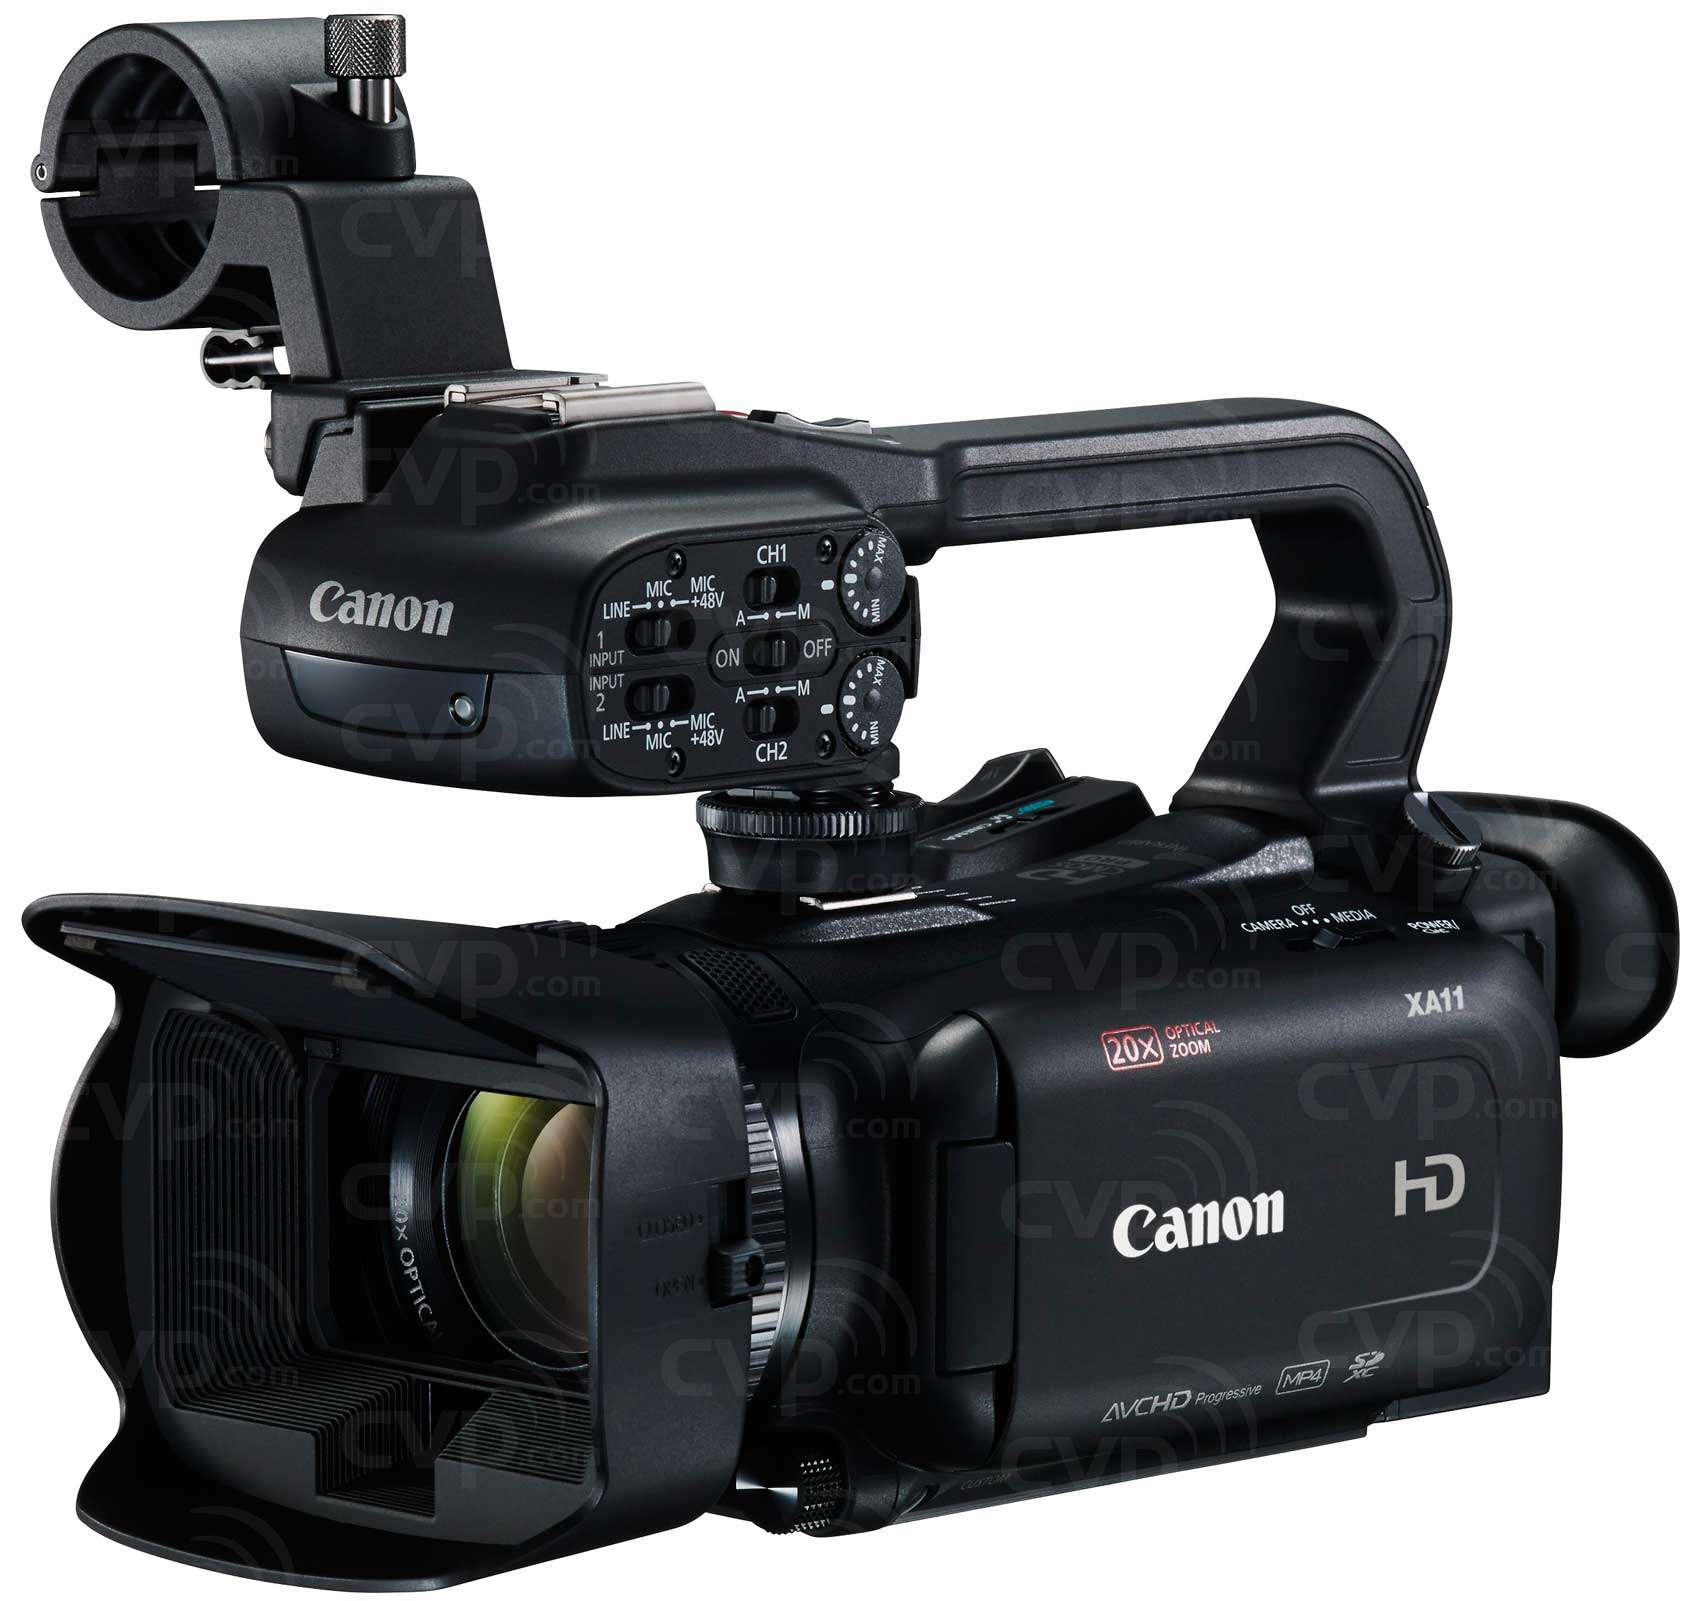 buy canon xa11 compact full hd camcorder with 20x optical zoom p n 2218c005aa. Black Bedroom Furniture Sets. Home Design Ideas